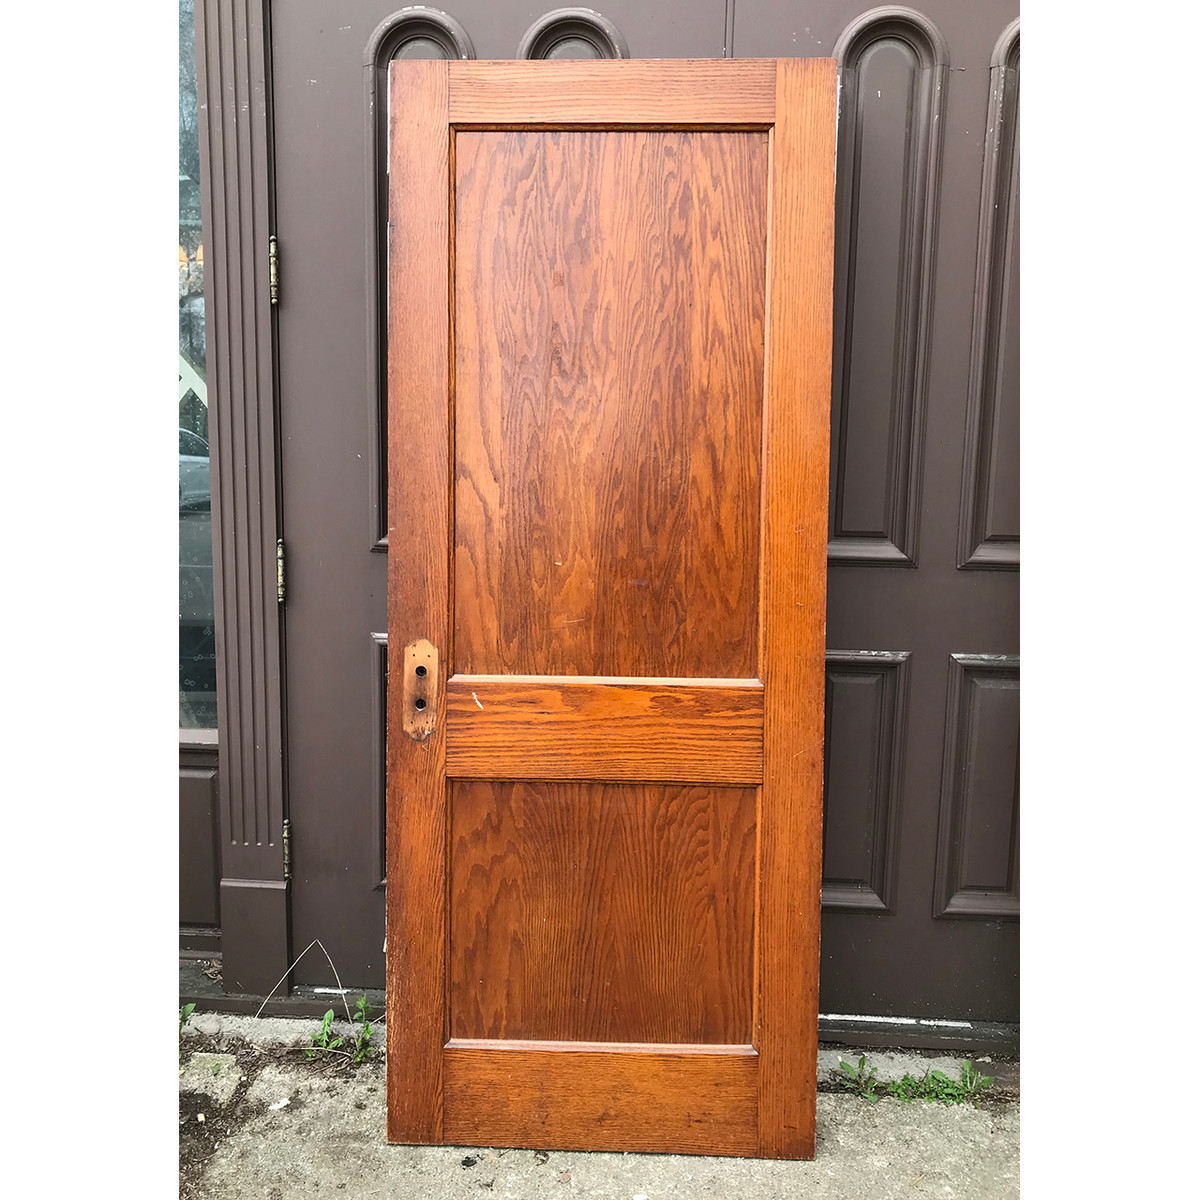 "D18067 - Antique Oak Traditional Two Flat Panel Interior Door 32"" x 79-1/4"""